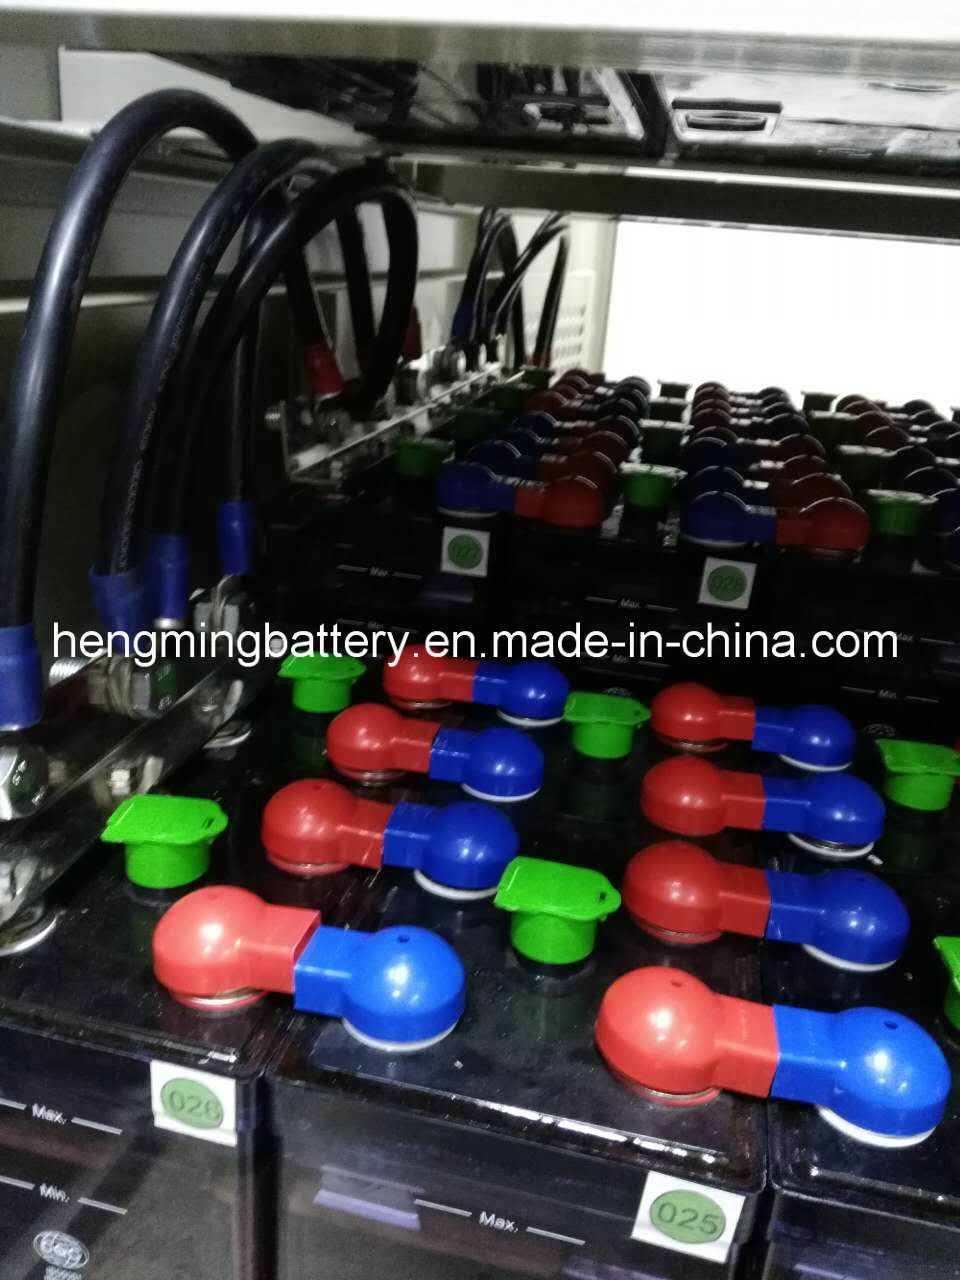 1.2V 450ah Qng450ah-ABS Container Ni-MH Battery/Packet Battery/Nickel-Metal Hydride Battery / Battery/for 12-380V System Green Power Only Manufacturer in China